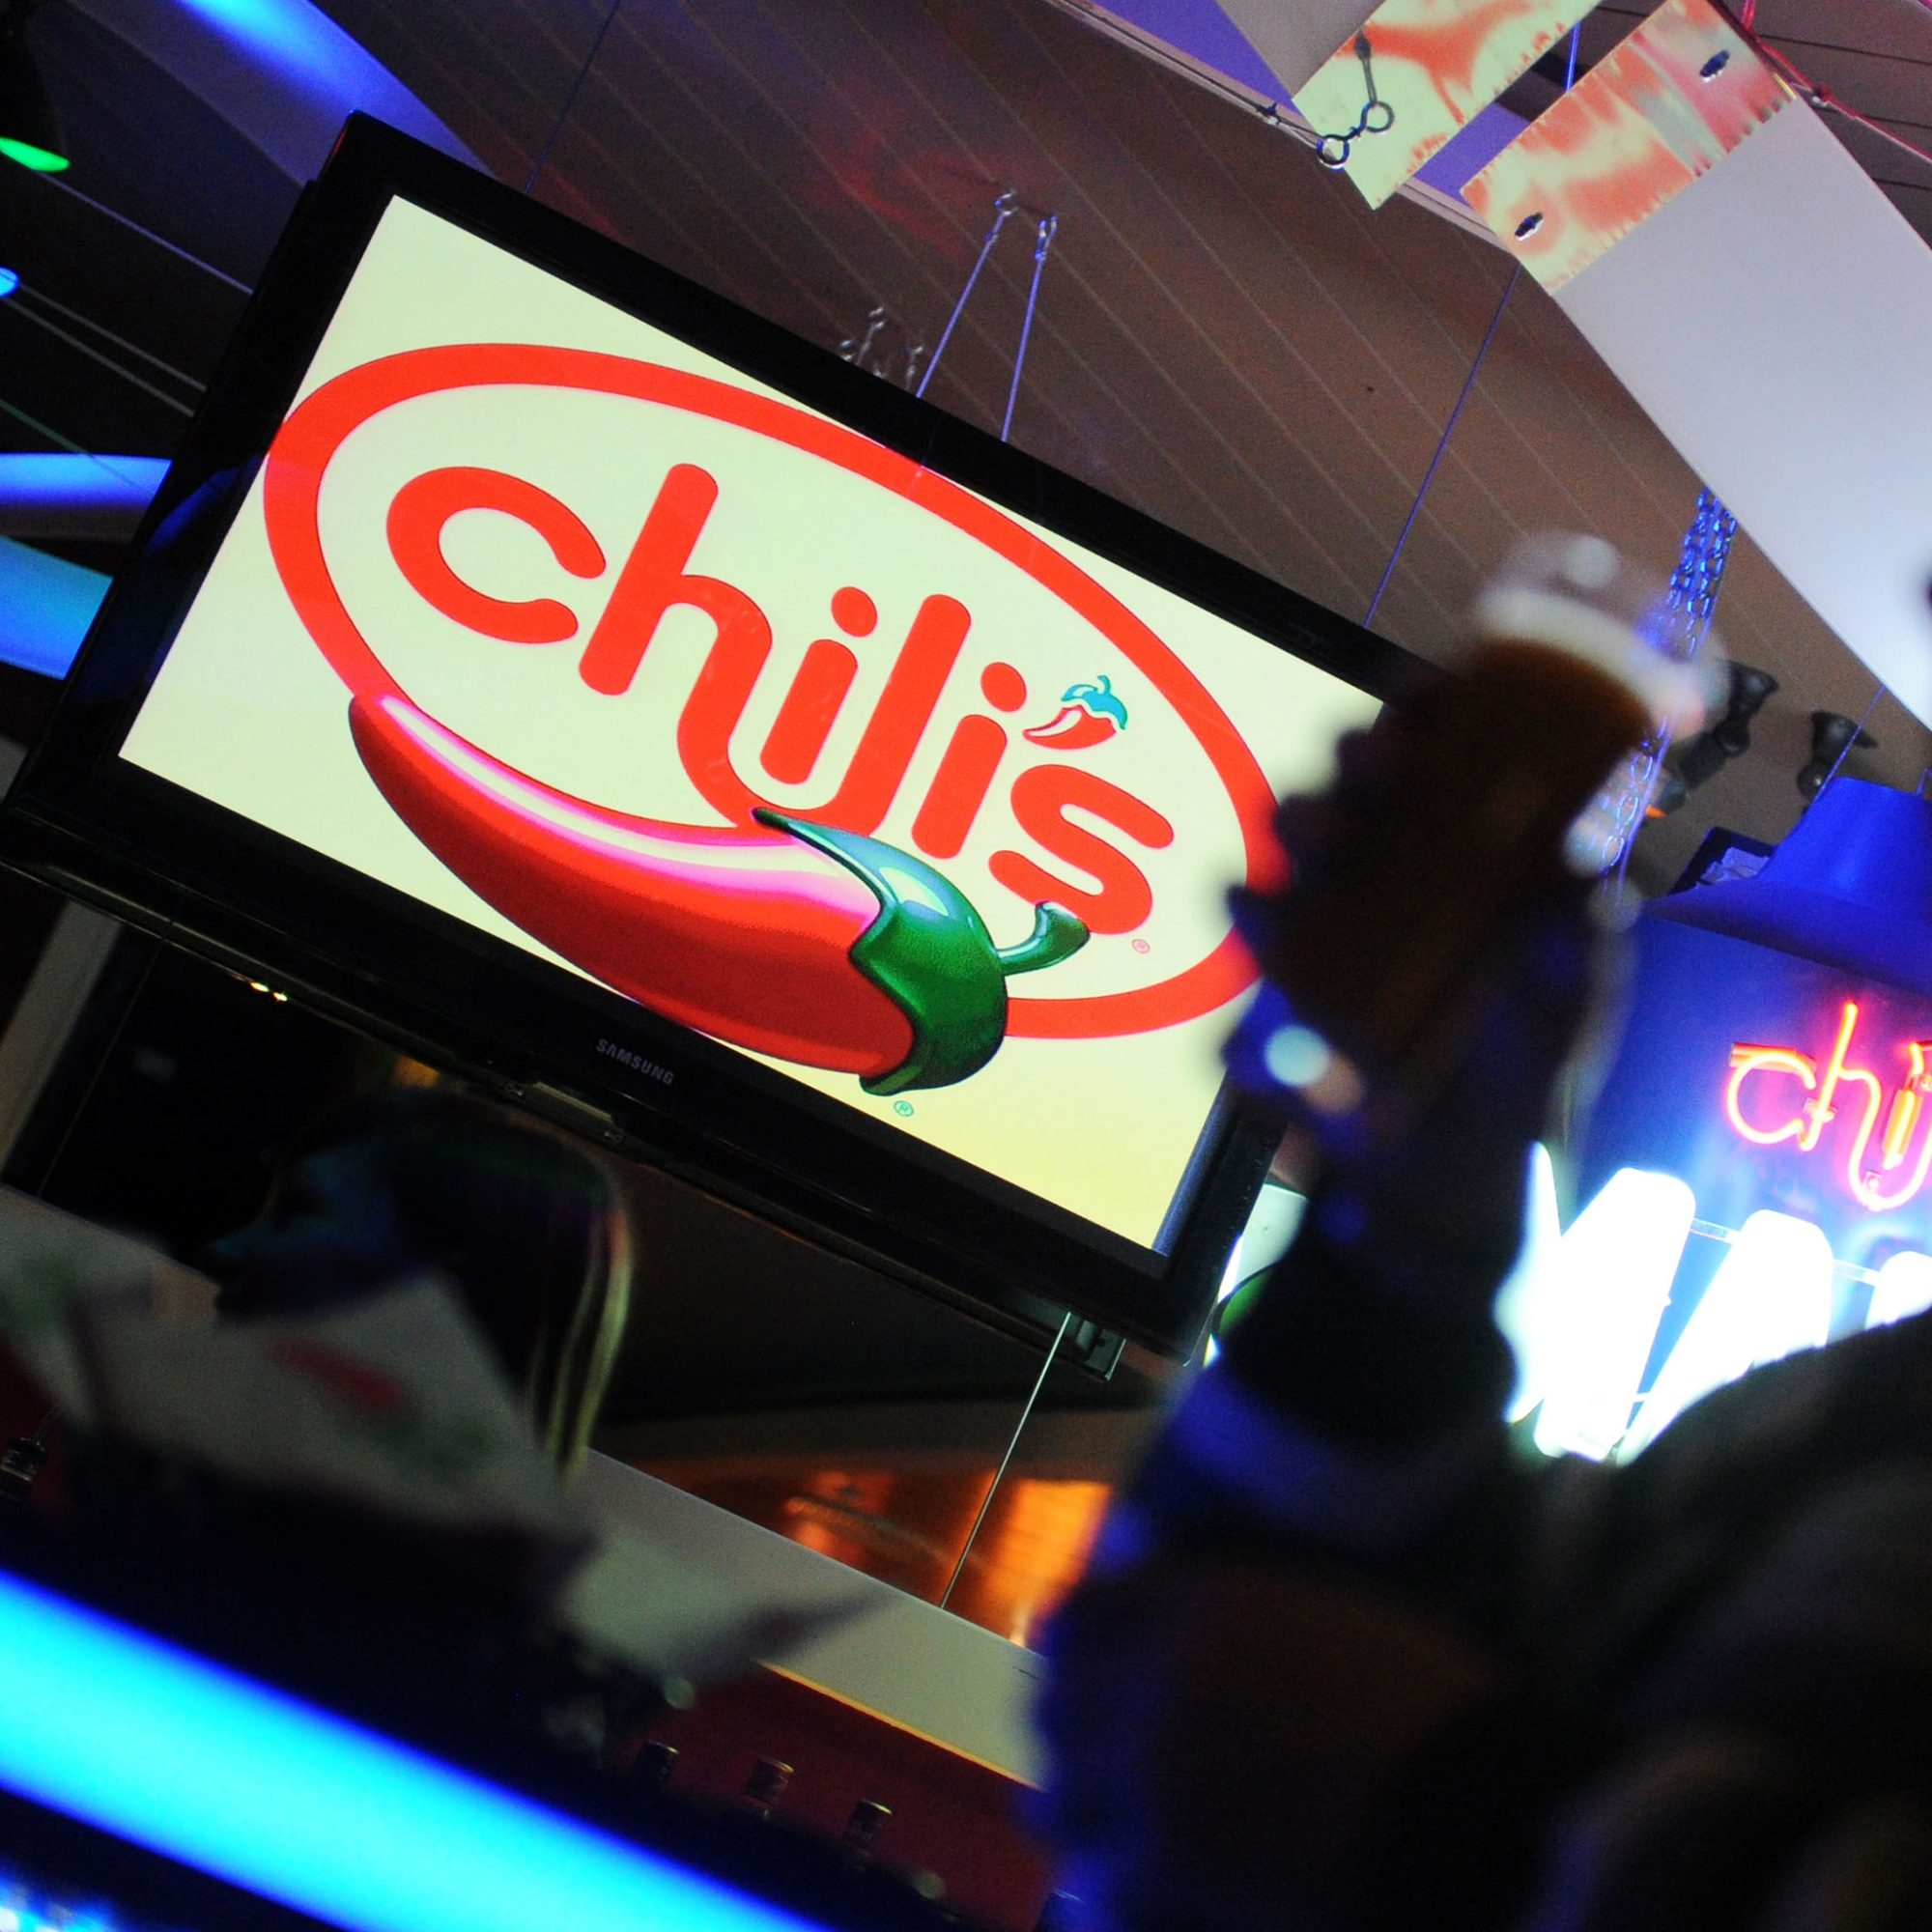 CHILIS PRO TIPPING FWX